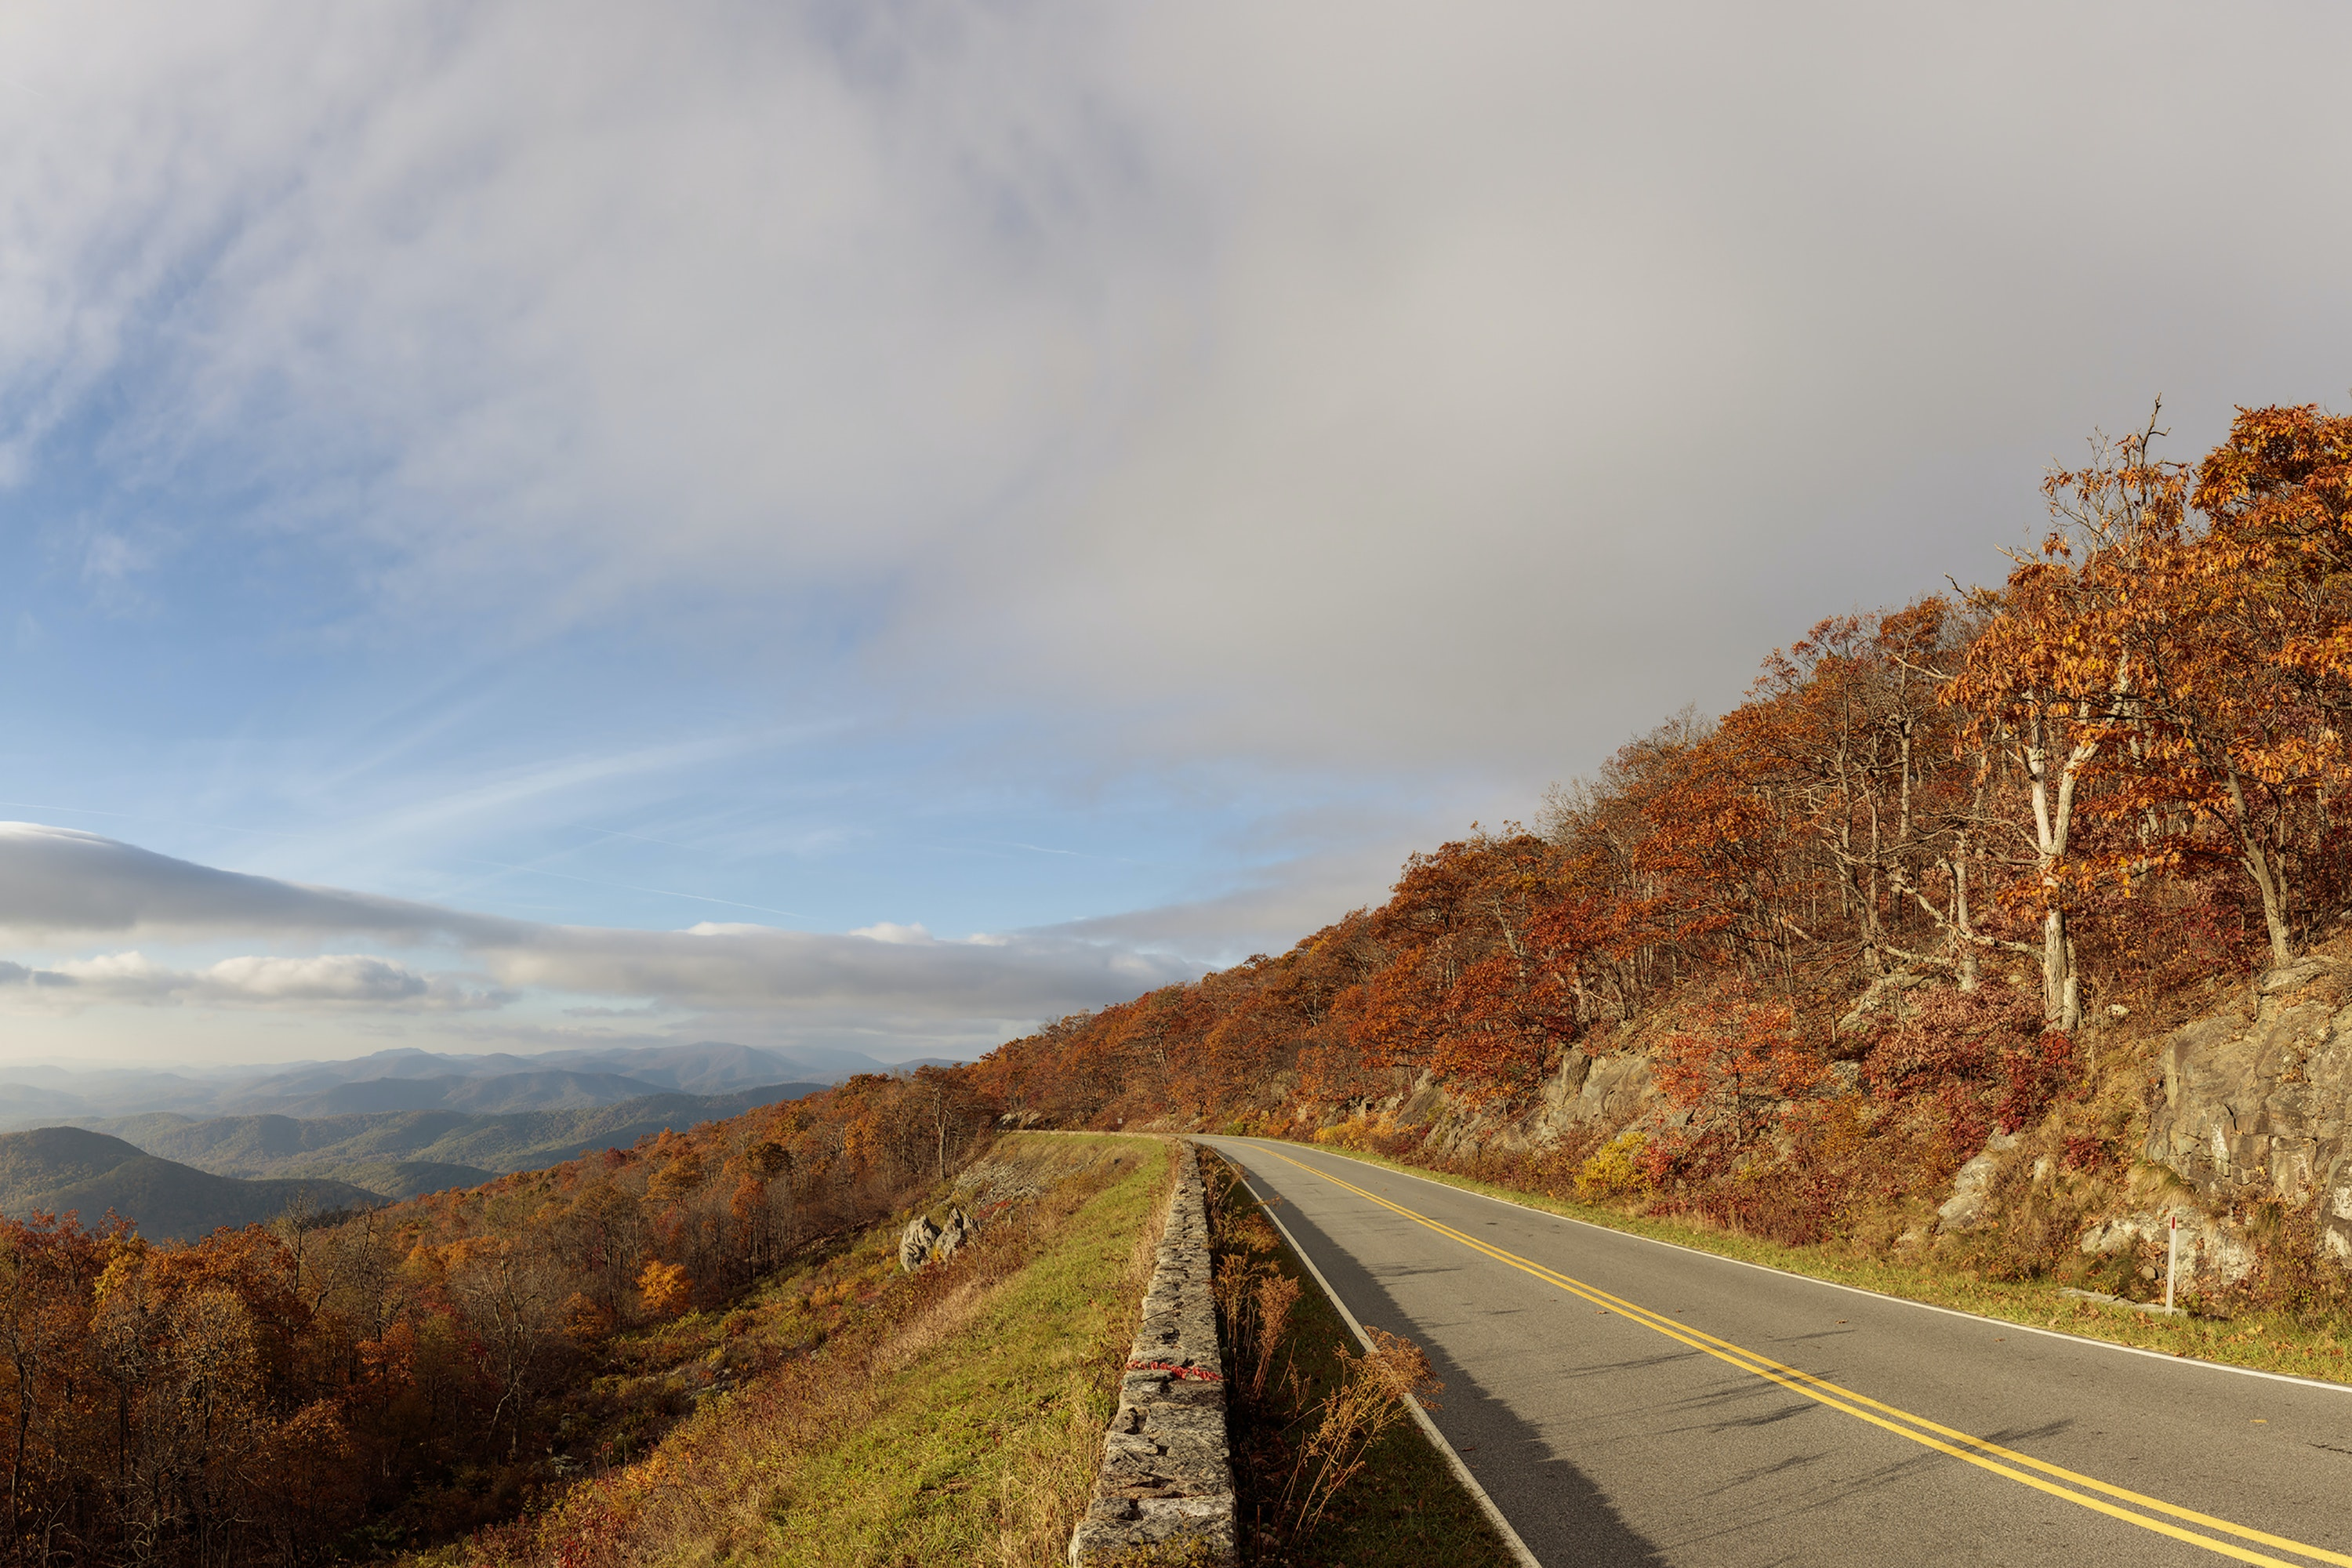 Take in the reds and oranges of Shenandoah National Park from one of its many scenic overlooks.